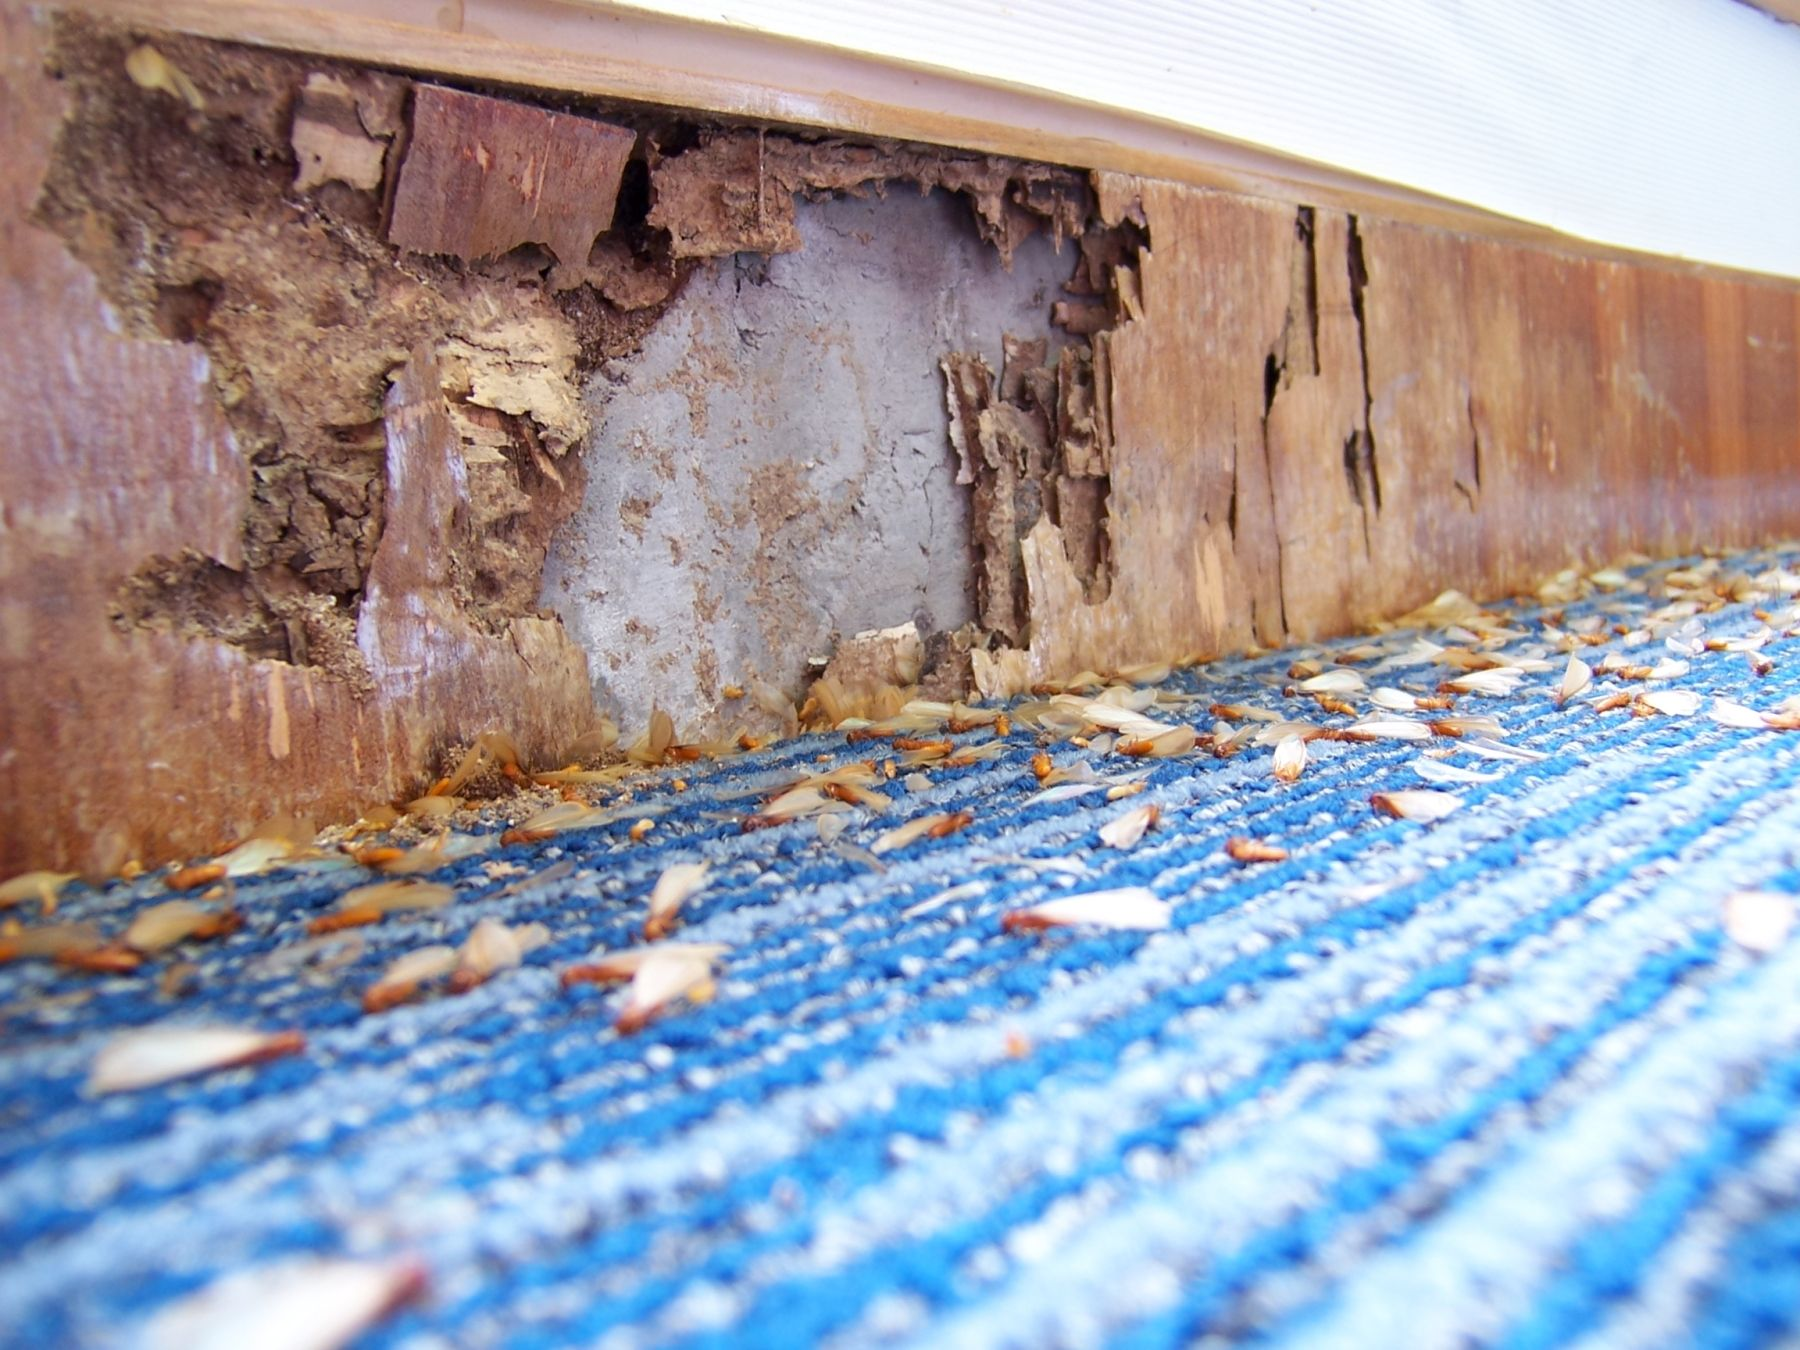 How To Get Rid of Common House Pests